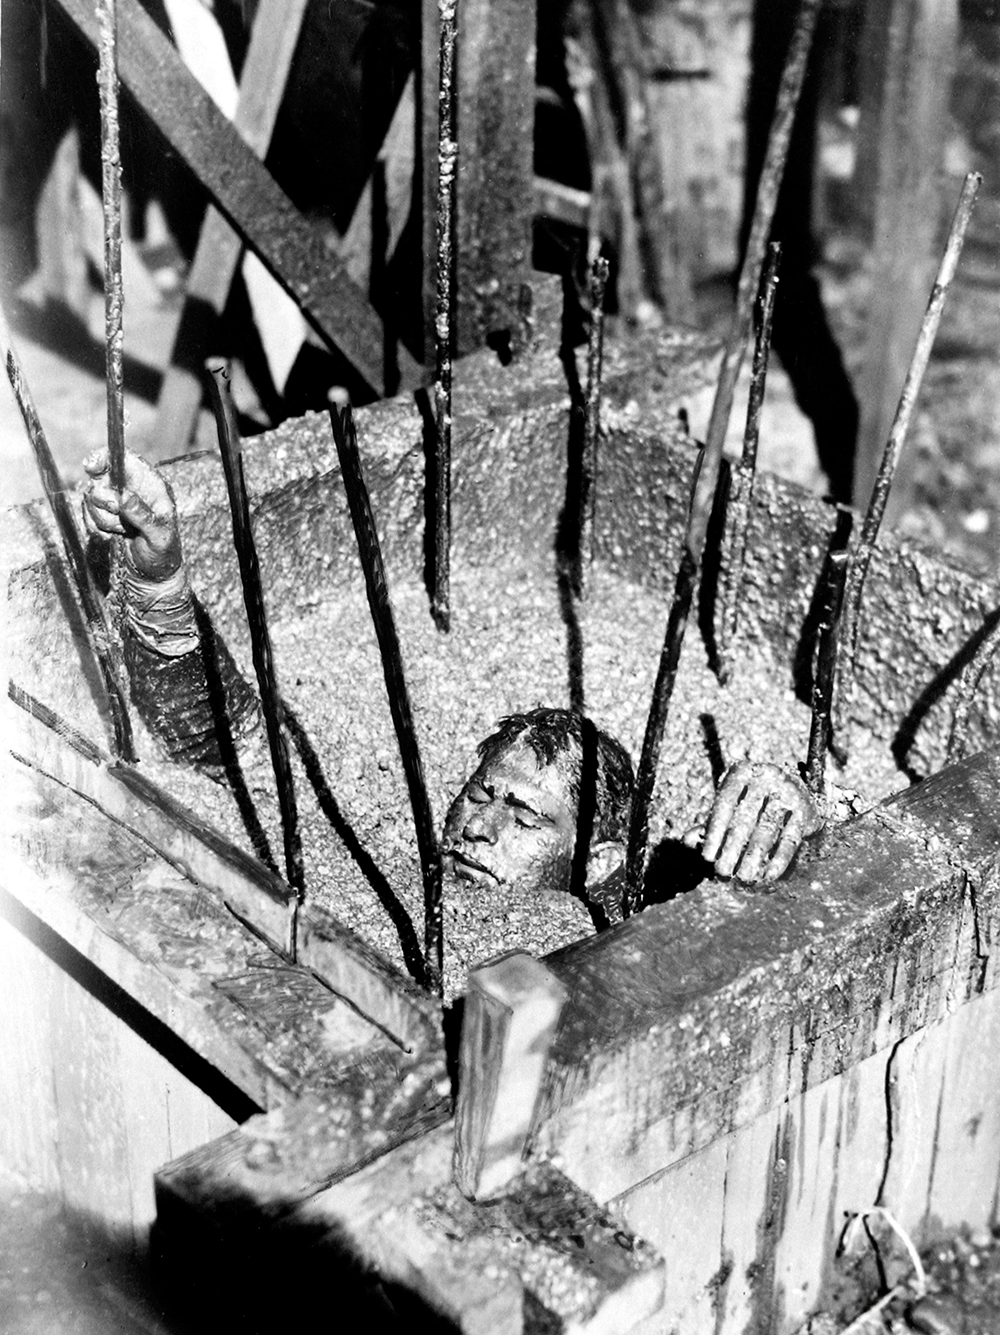 A man is buried to his neck in gravel, behind bars.